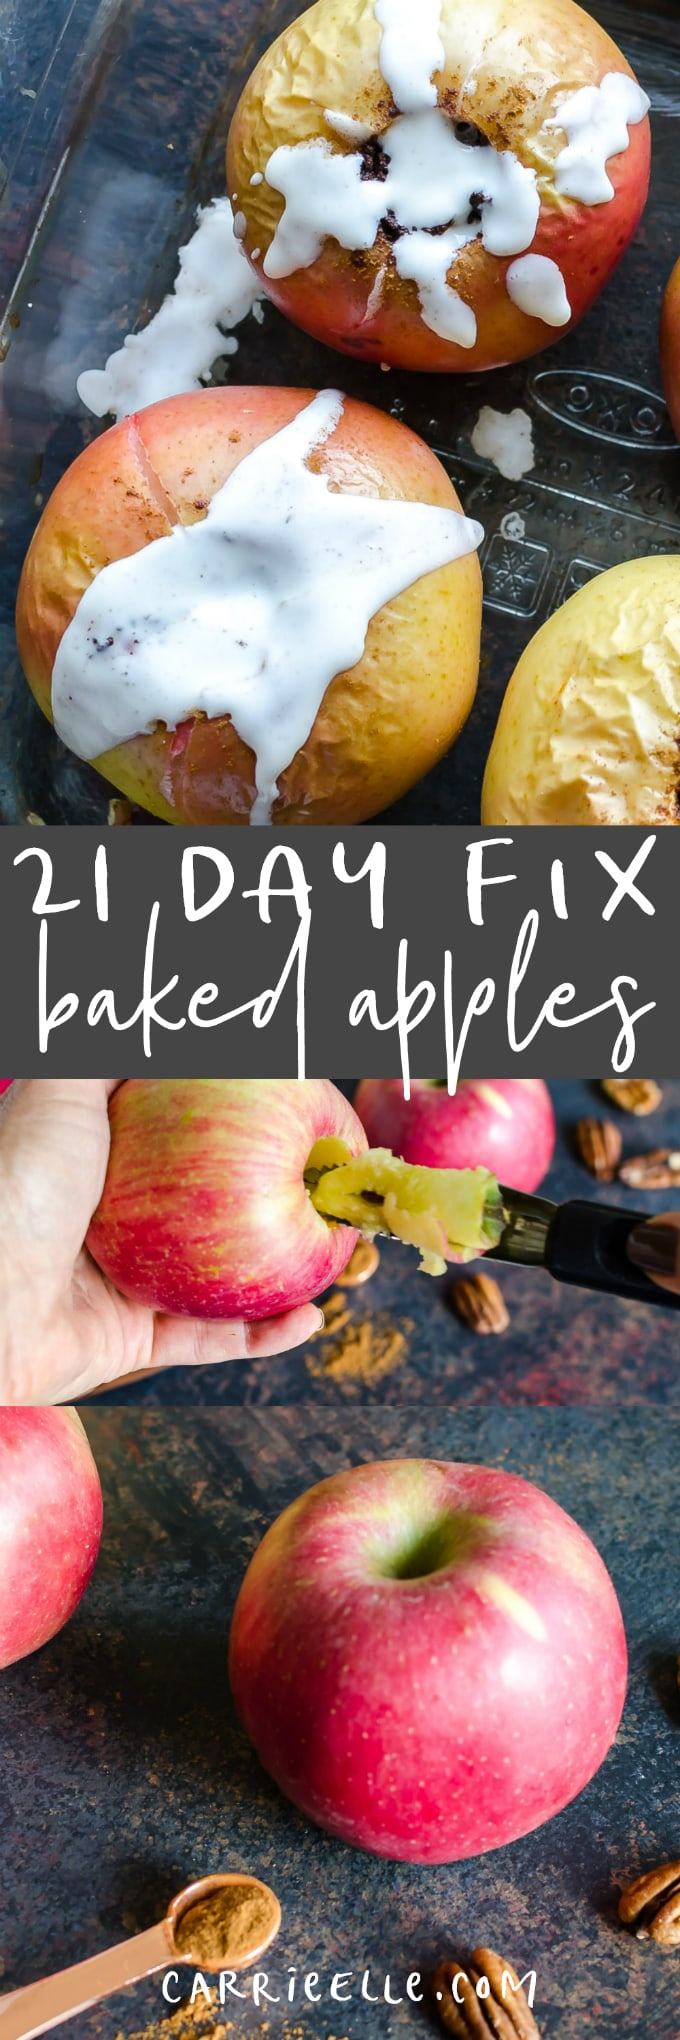 21 Day Fix Baked Apples